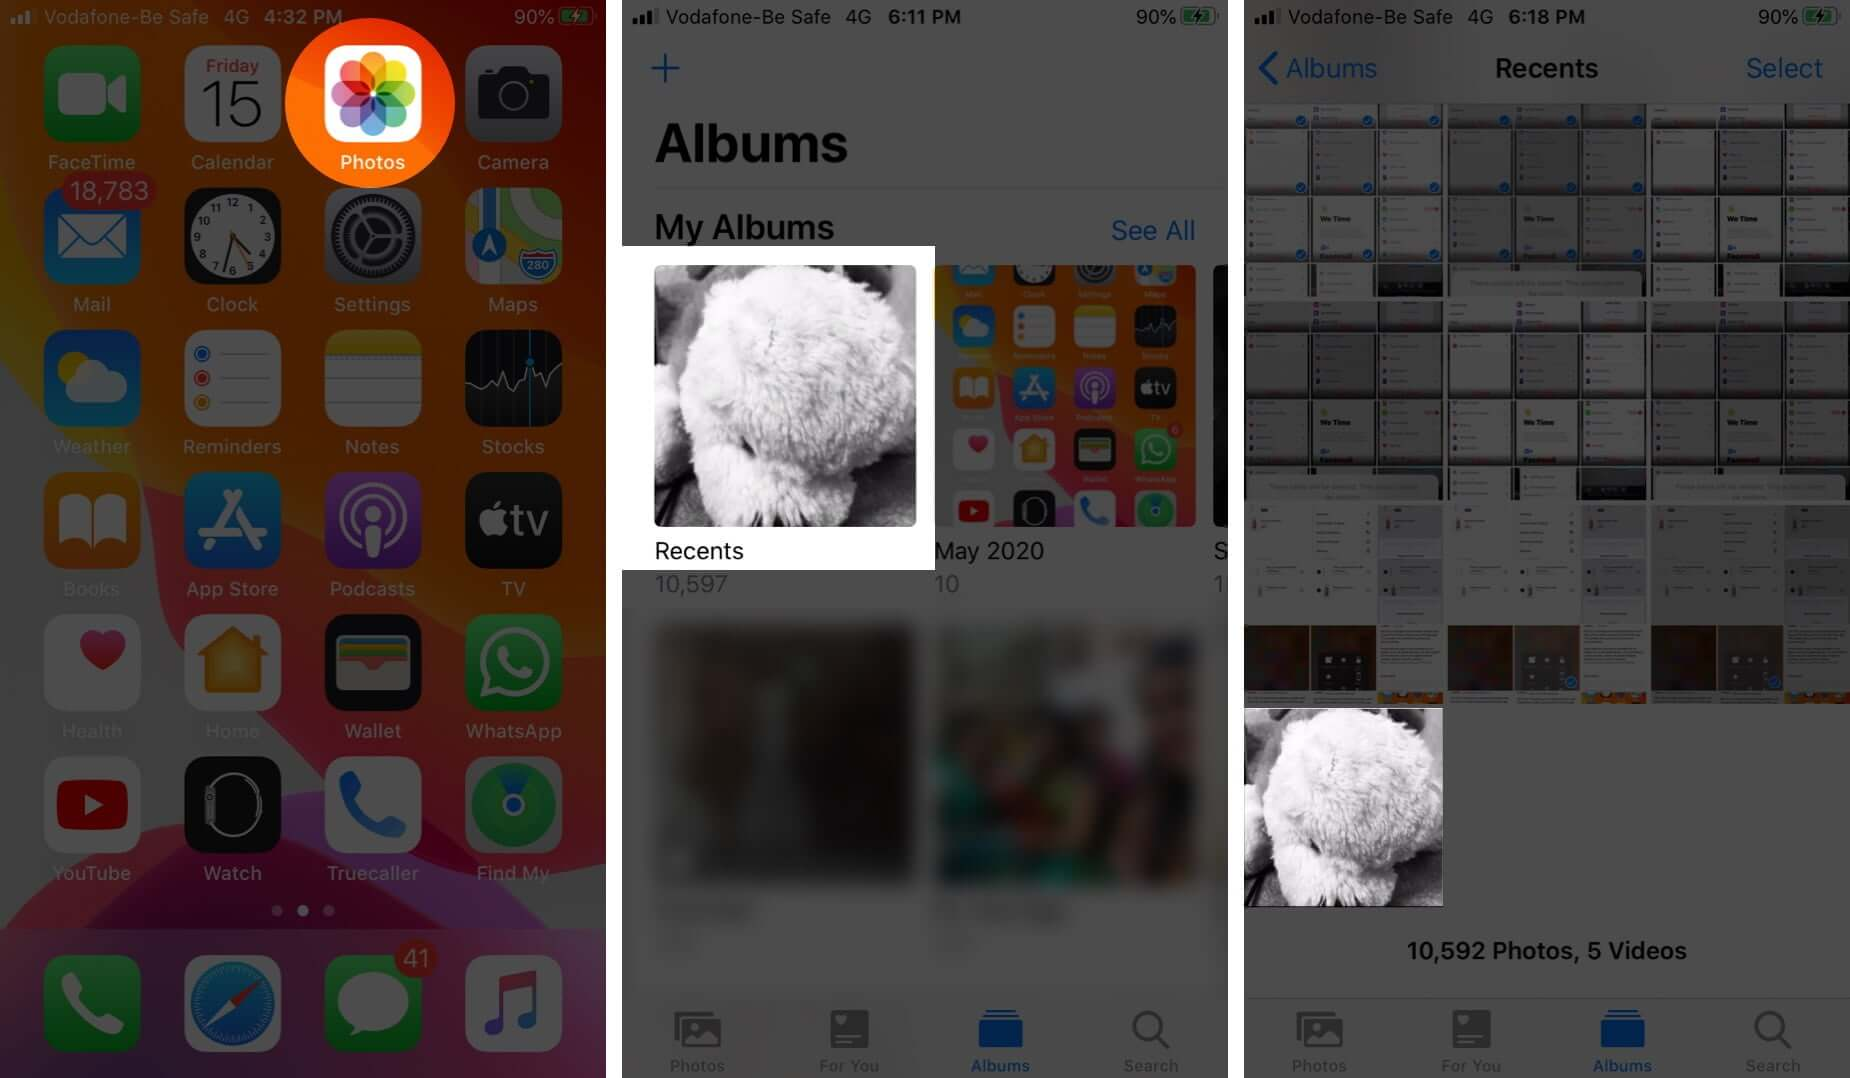 open photos app tap on album and then tap on edited photo